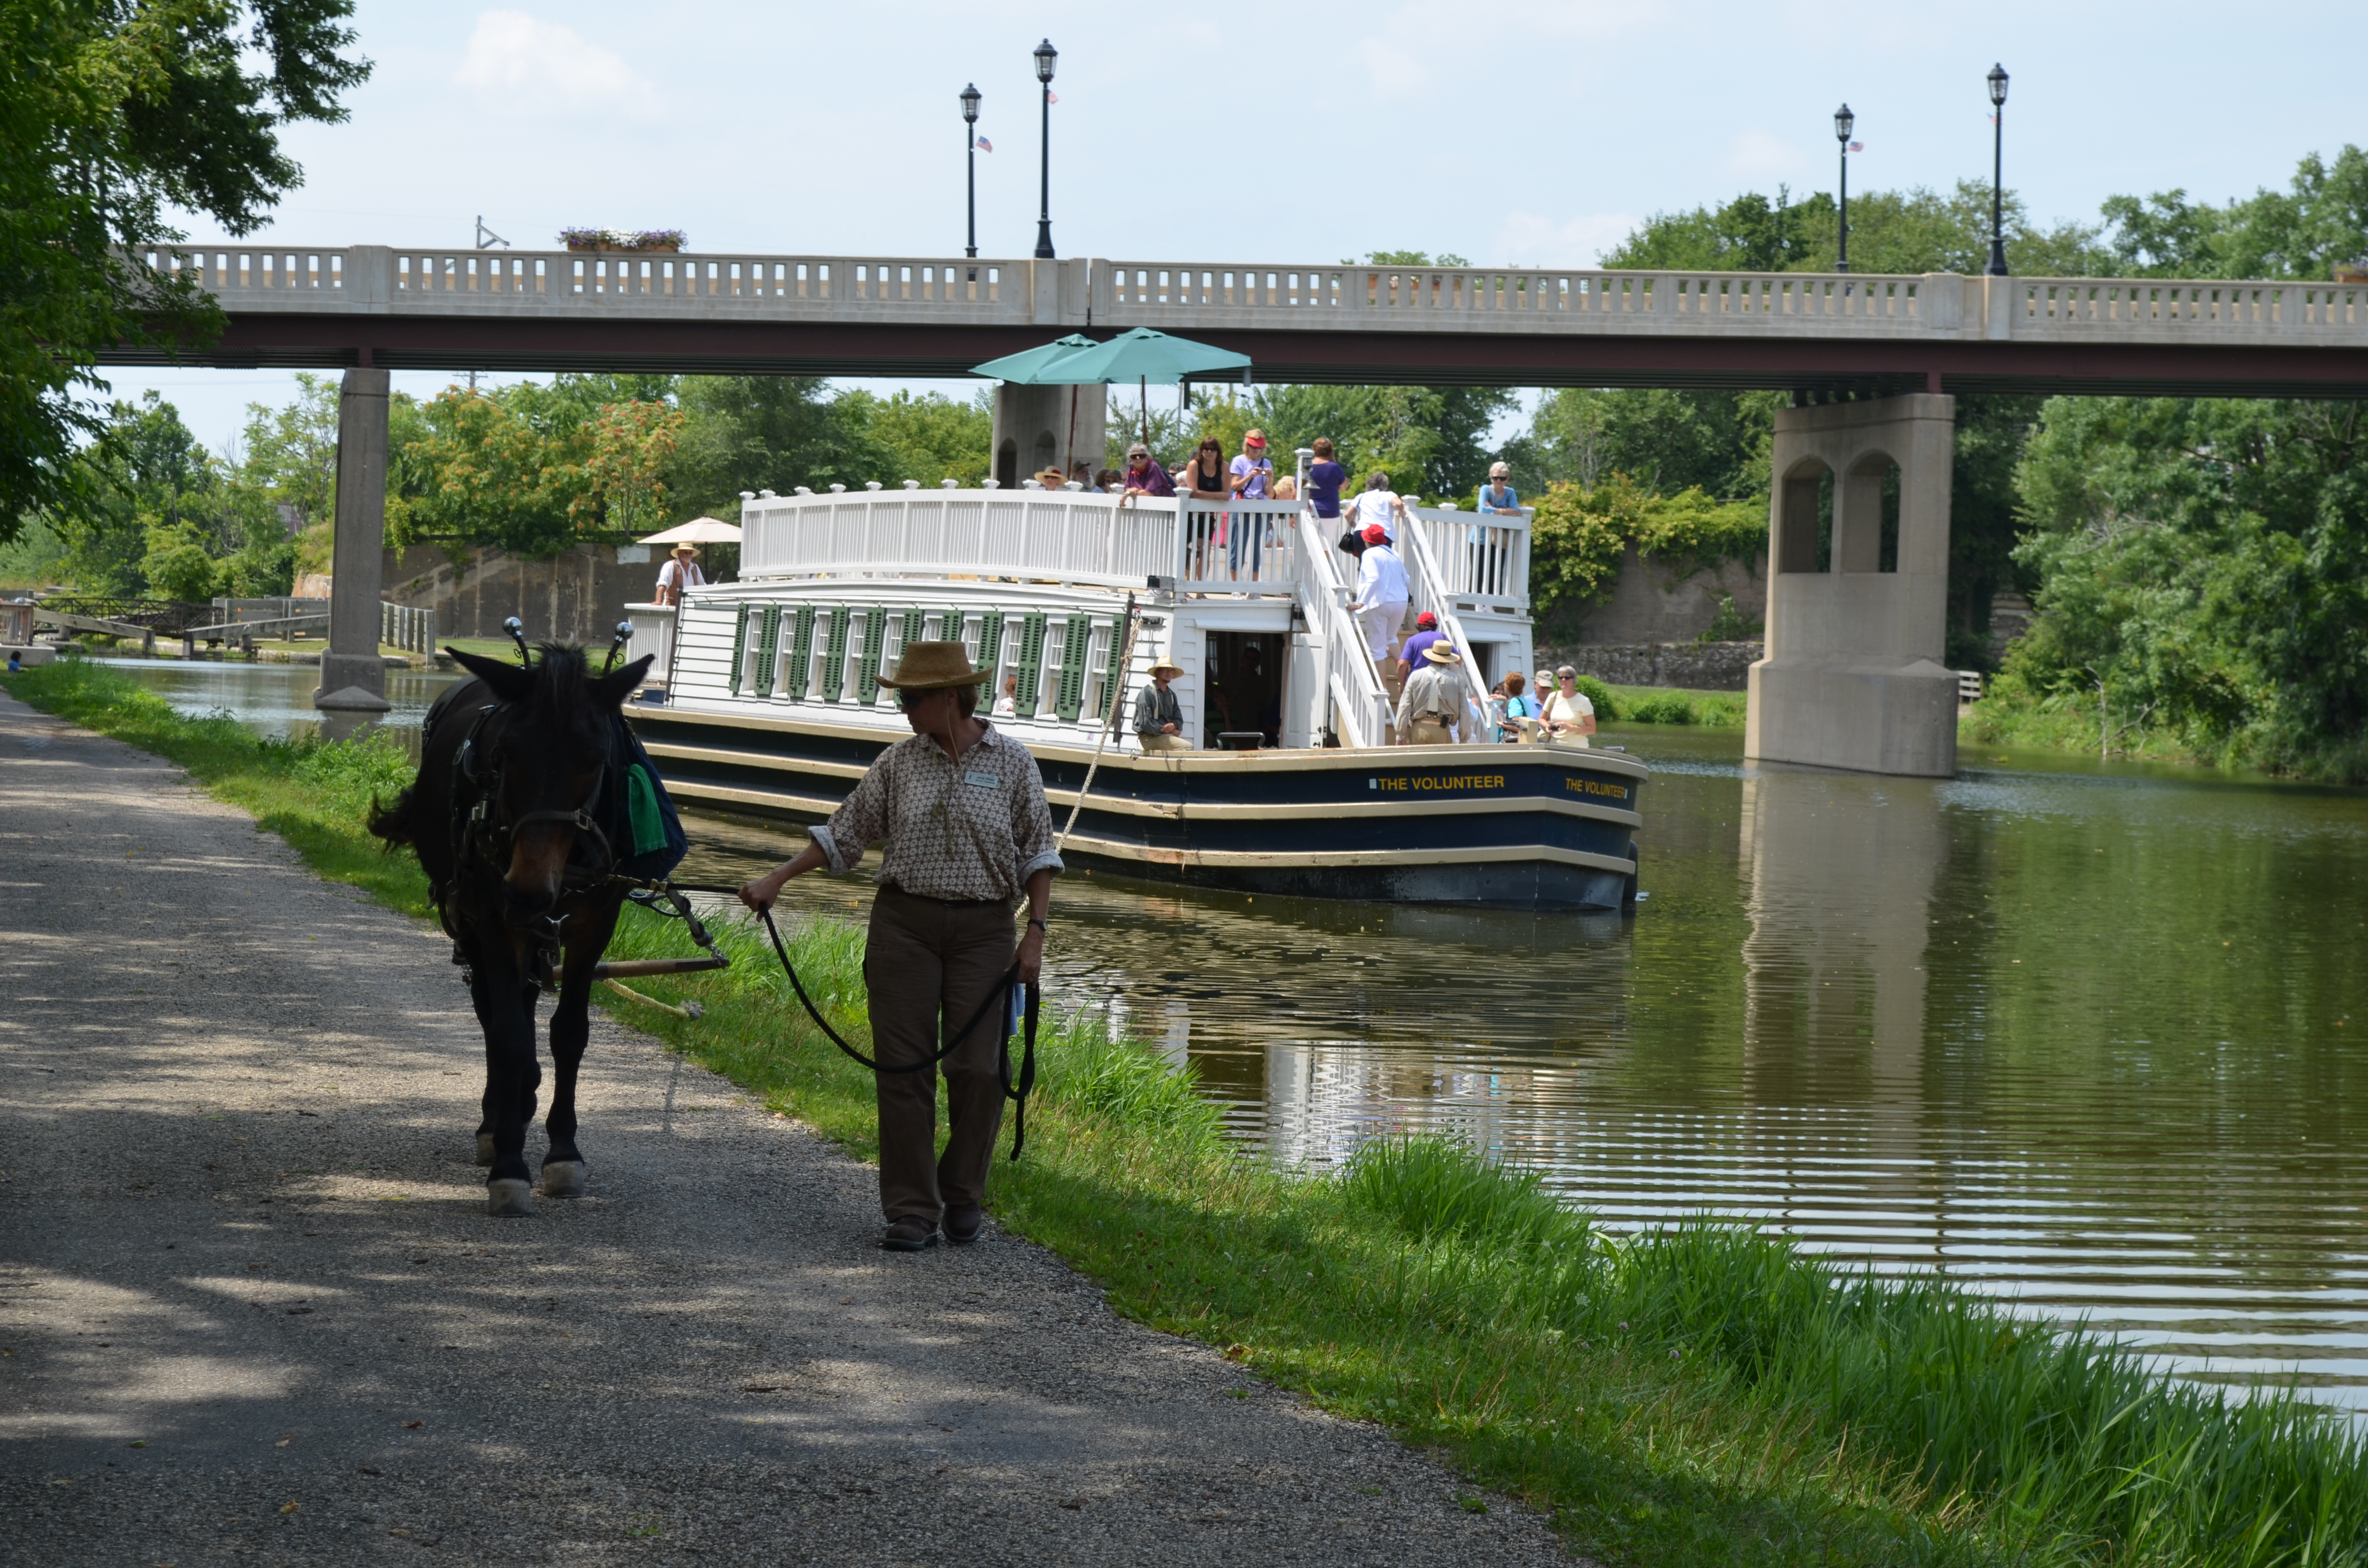 The Mule-pulled I&M Canal Boat in LaSalle, IL